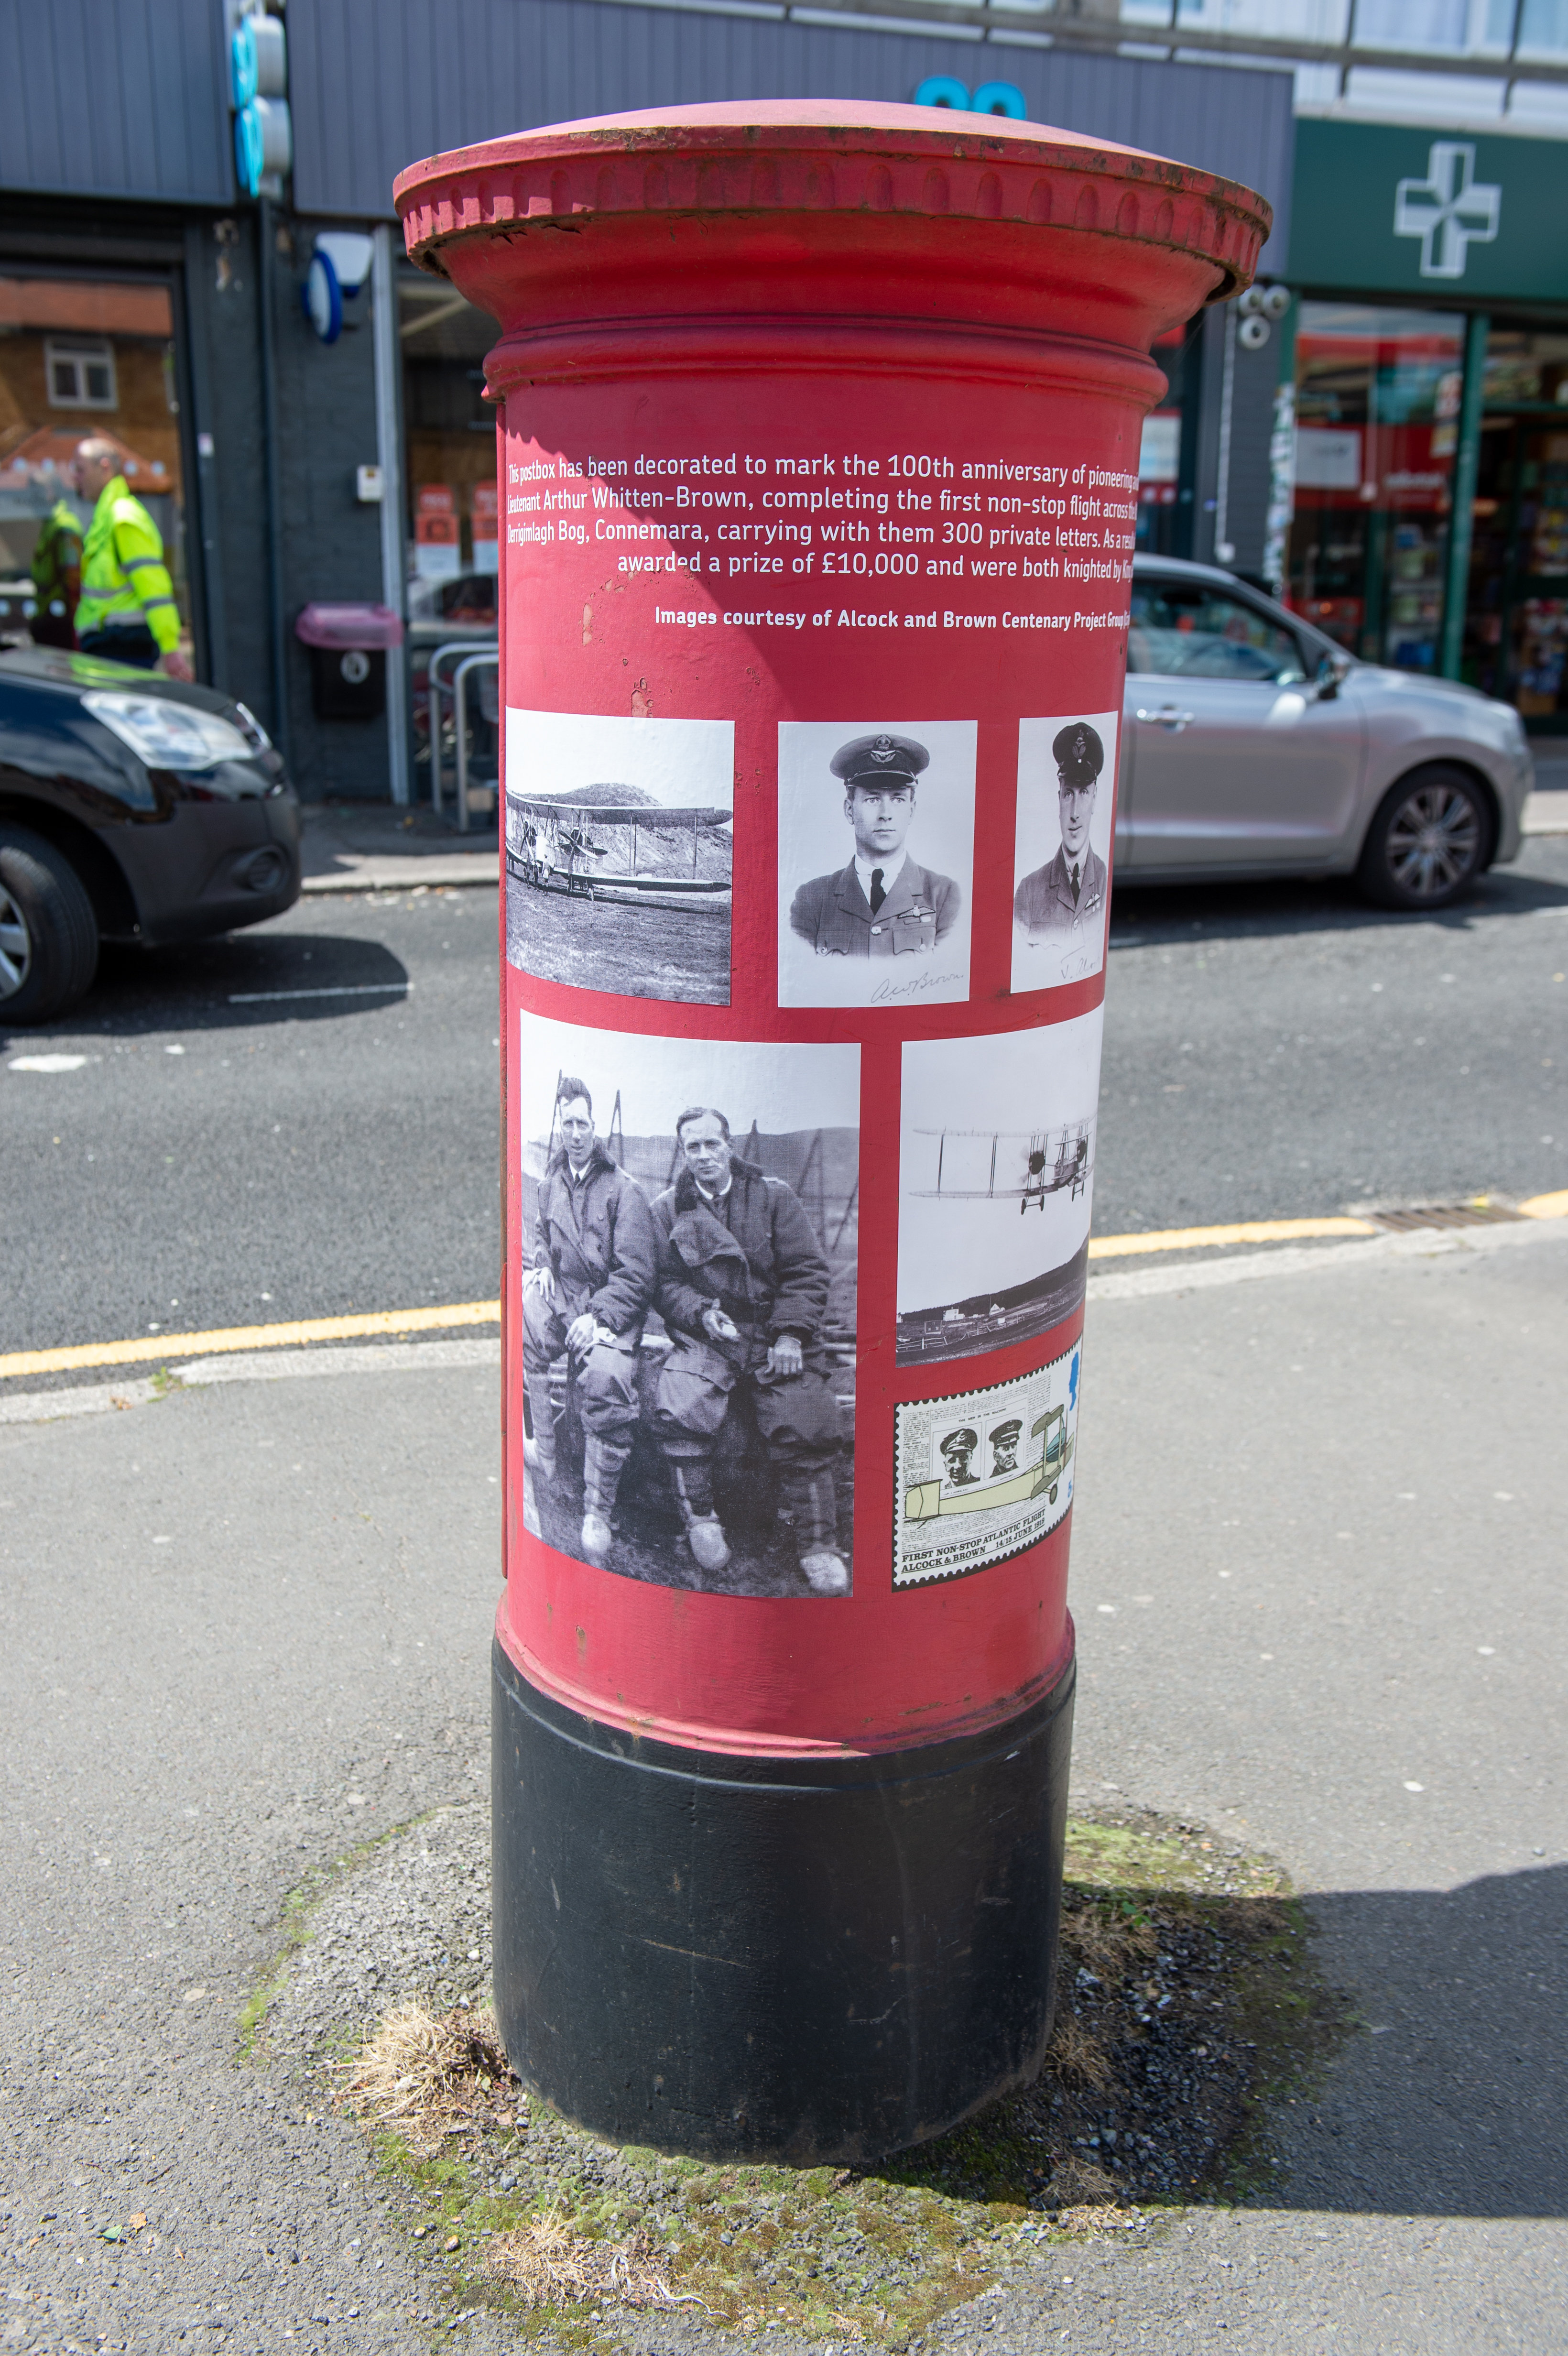 A postbox on Harlington High Street that has been decorated to commemorate 100 years of pioneering aviators Captain John Alcock and Lieutenant Arthur Whitten Brown